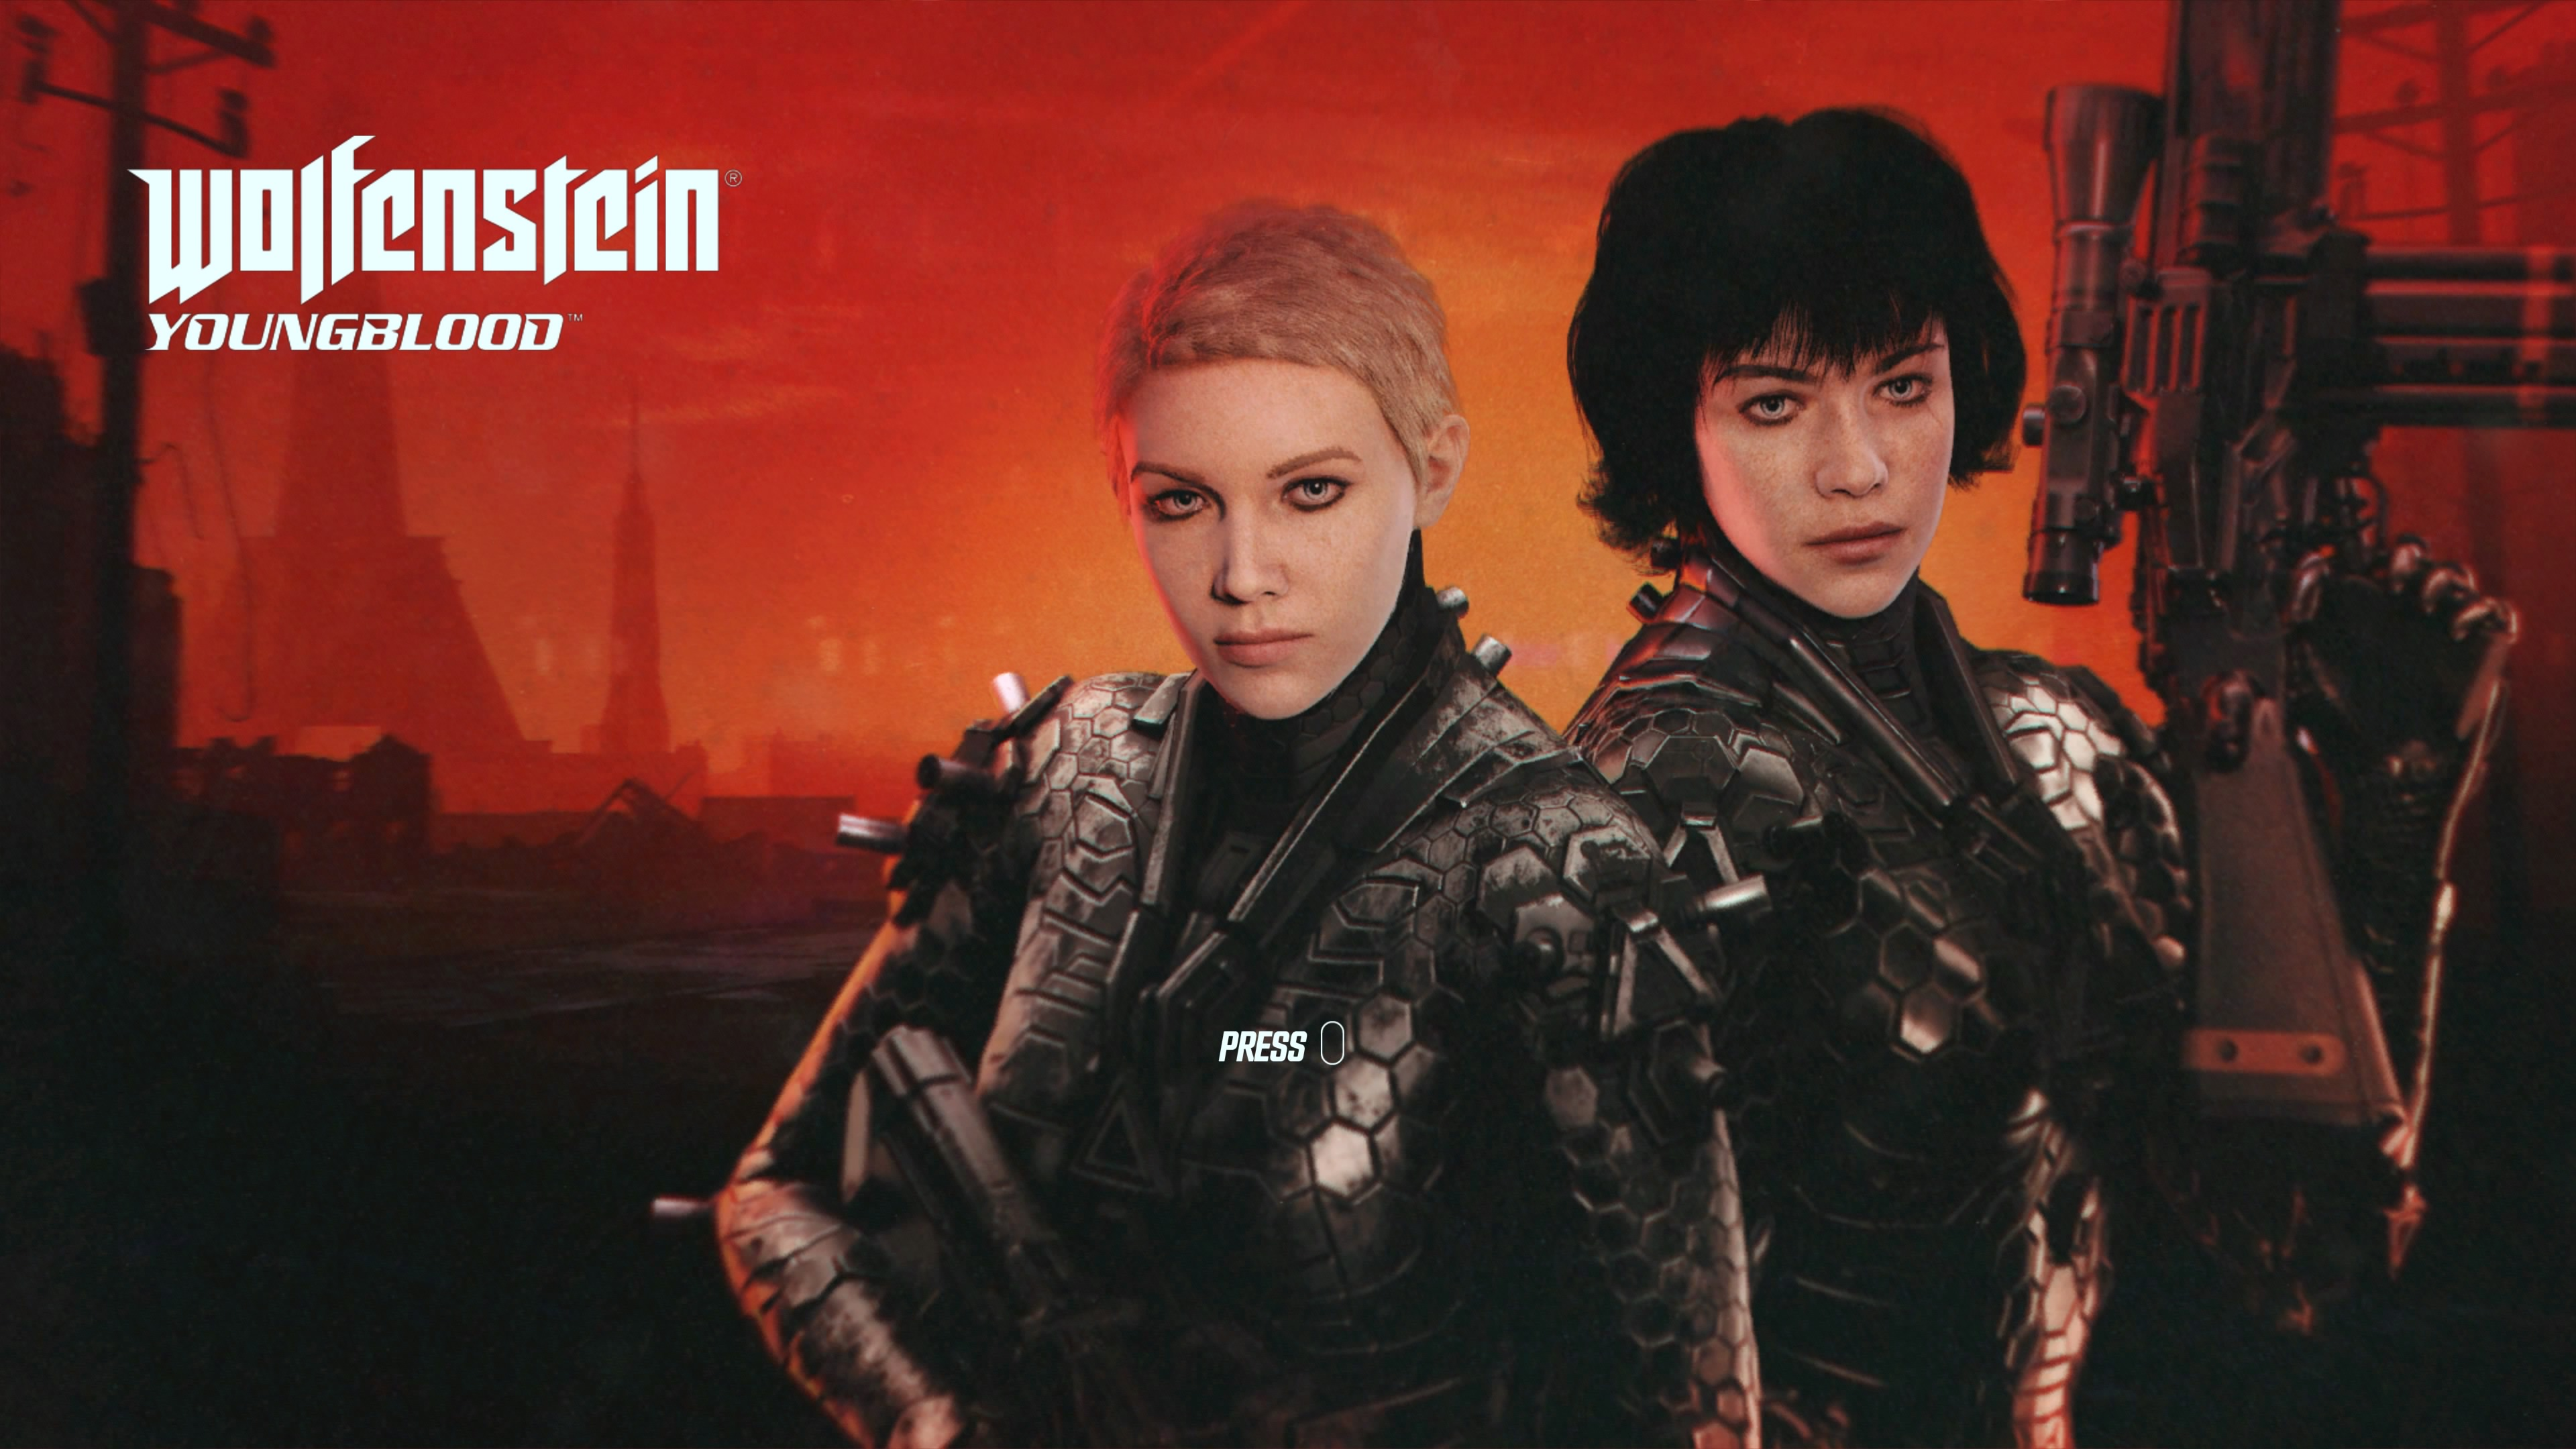 Wolfenstein: Youngblood Review – The Next Gen of Nazi Killers